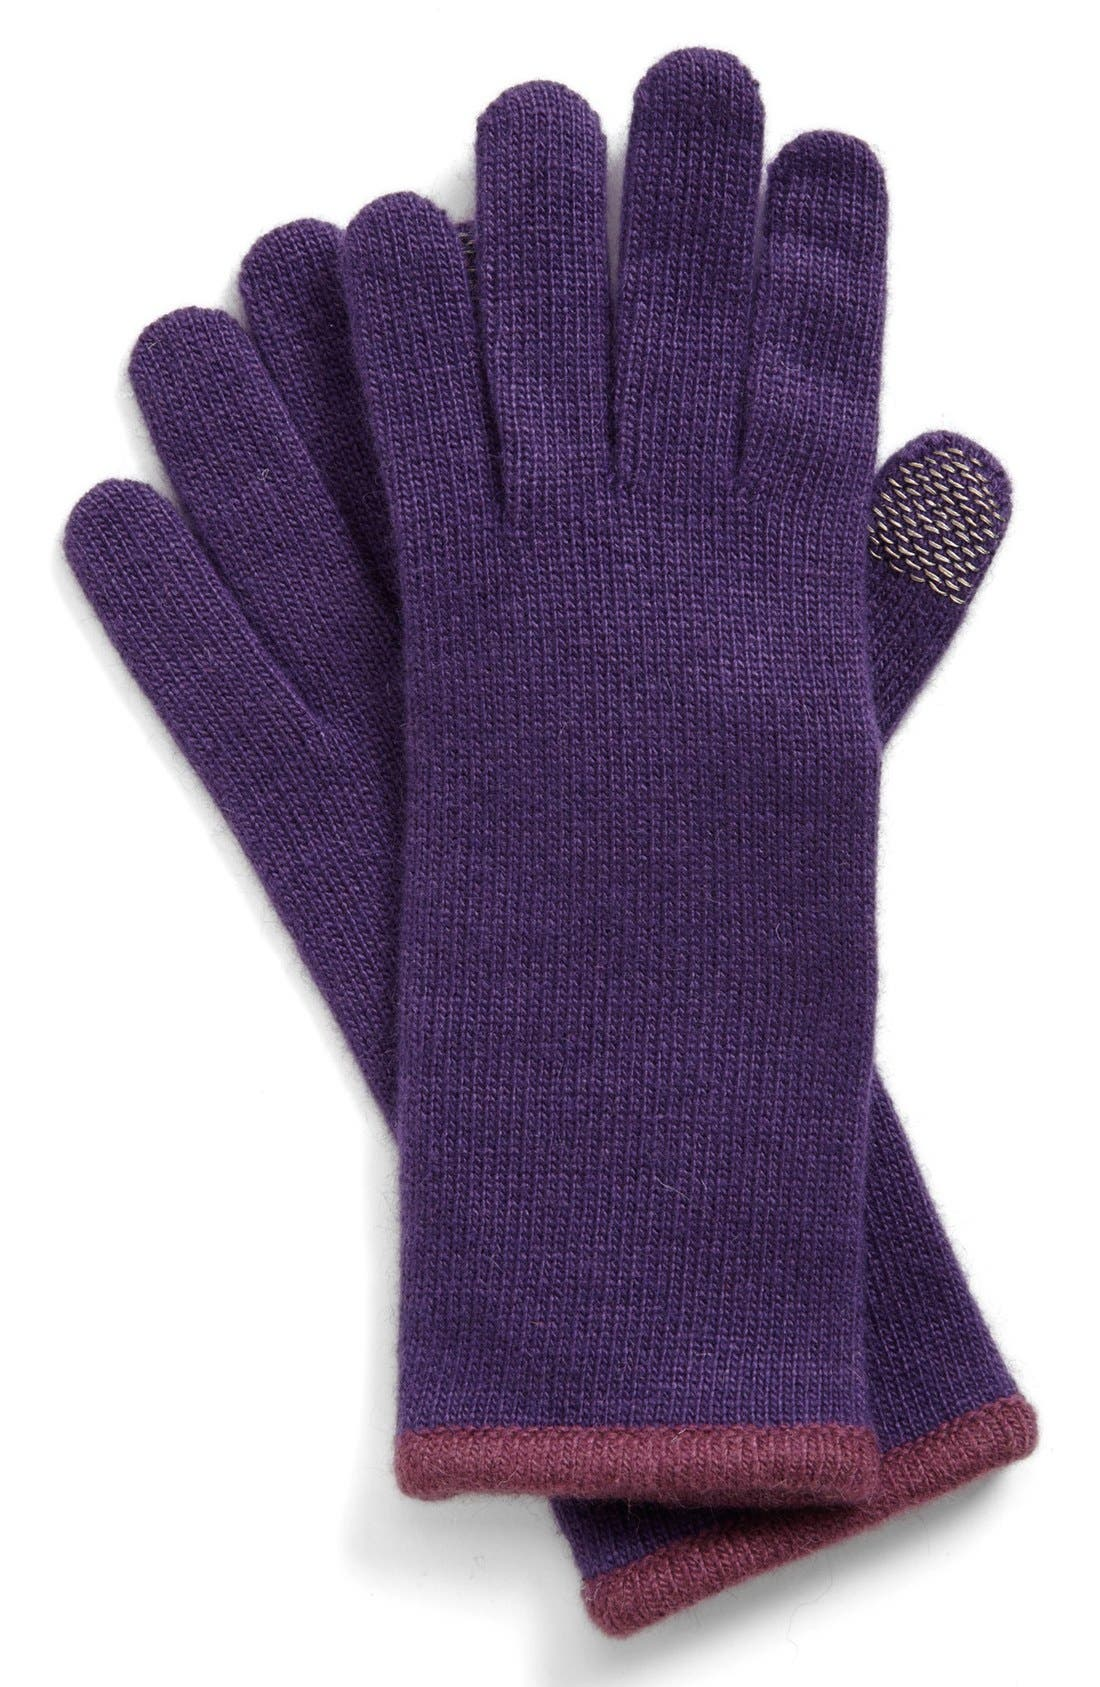 Alternate Image 1 Selected - Portolano Piped Tech Gloves